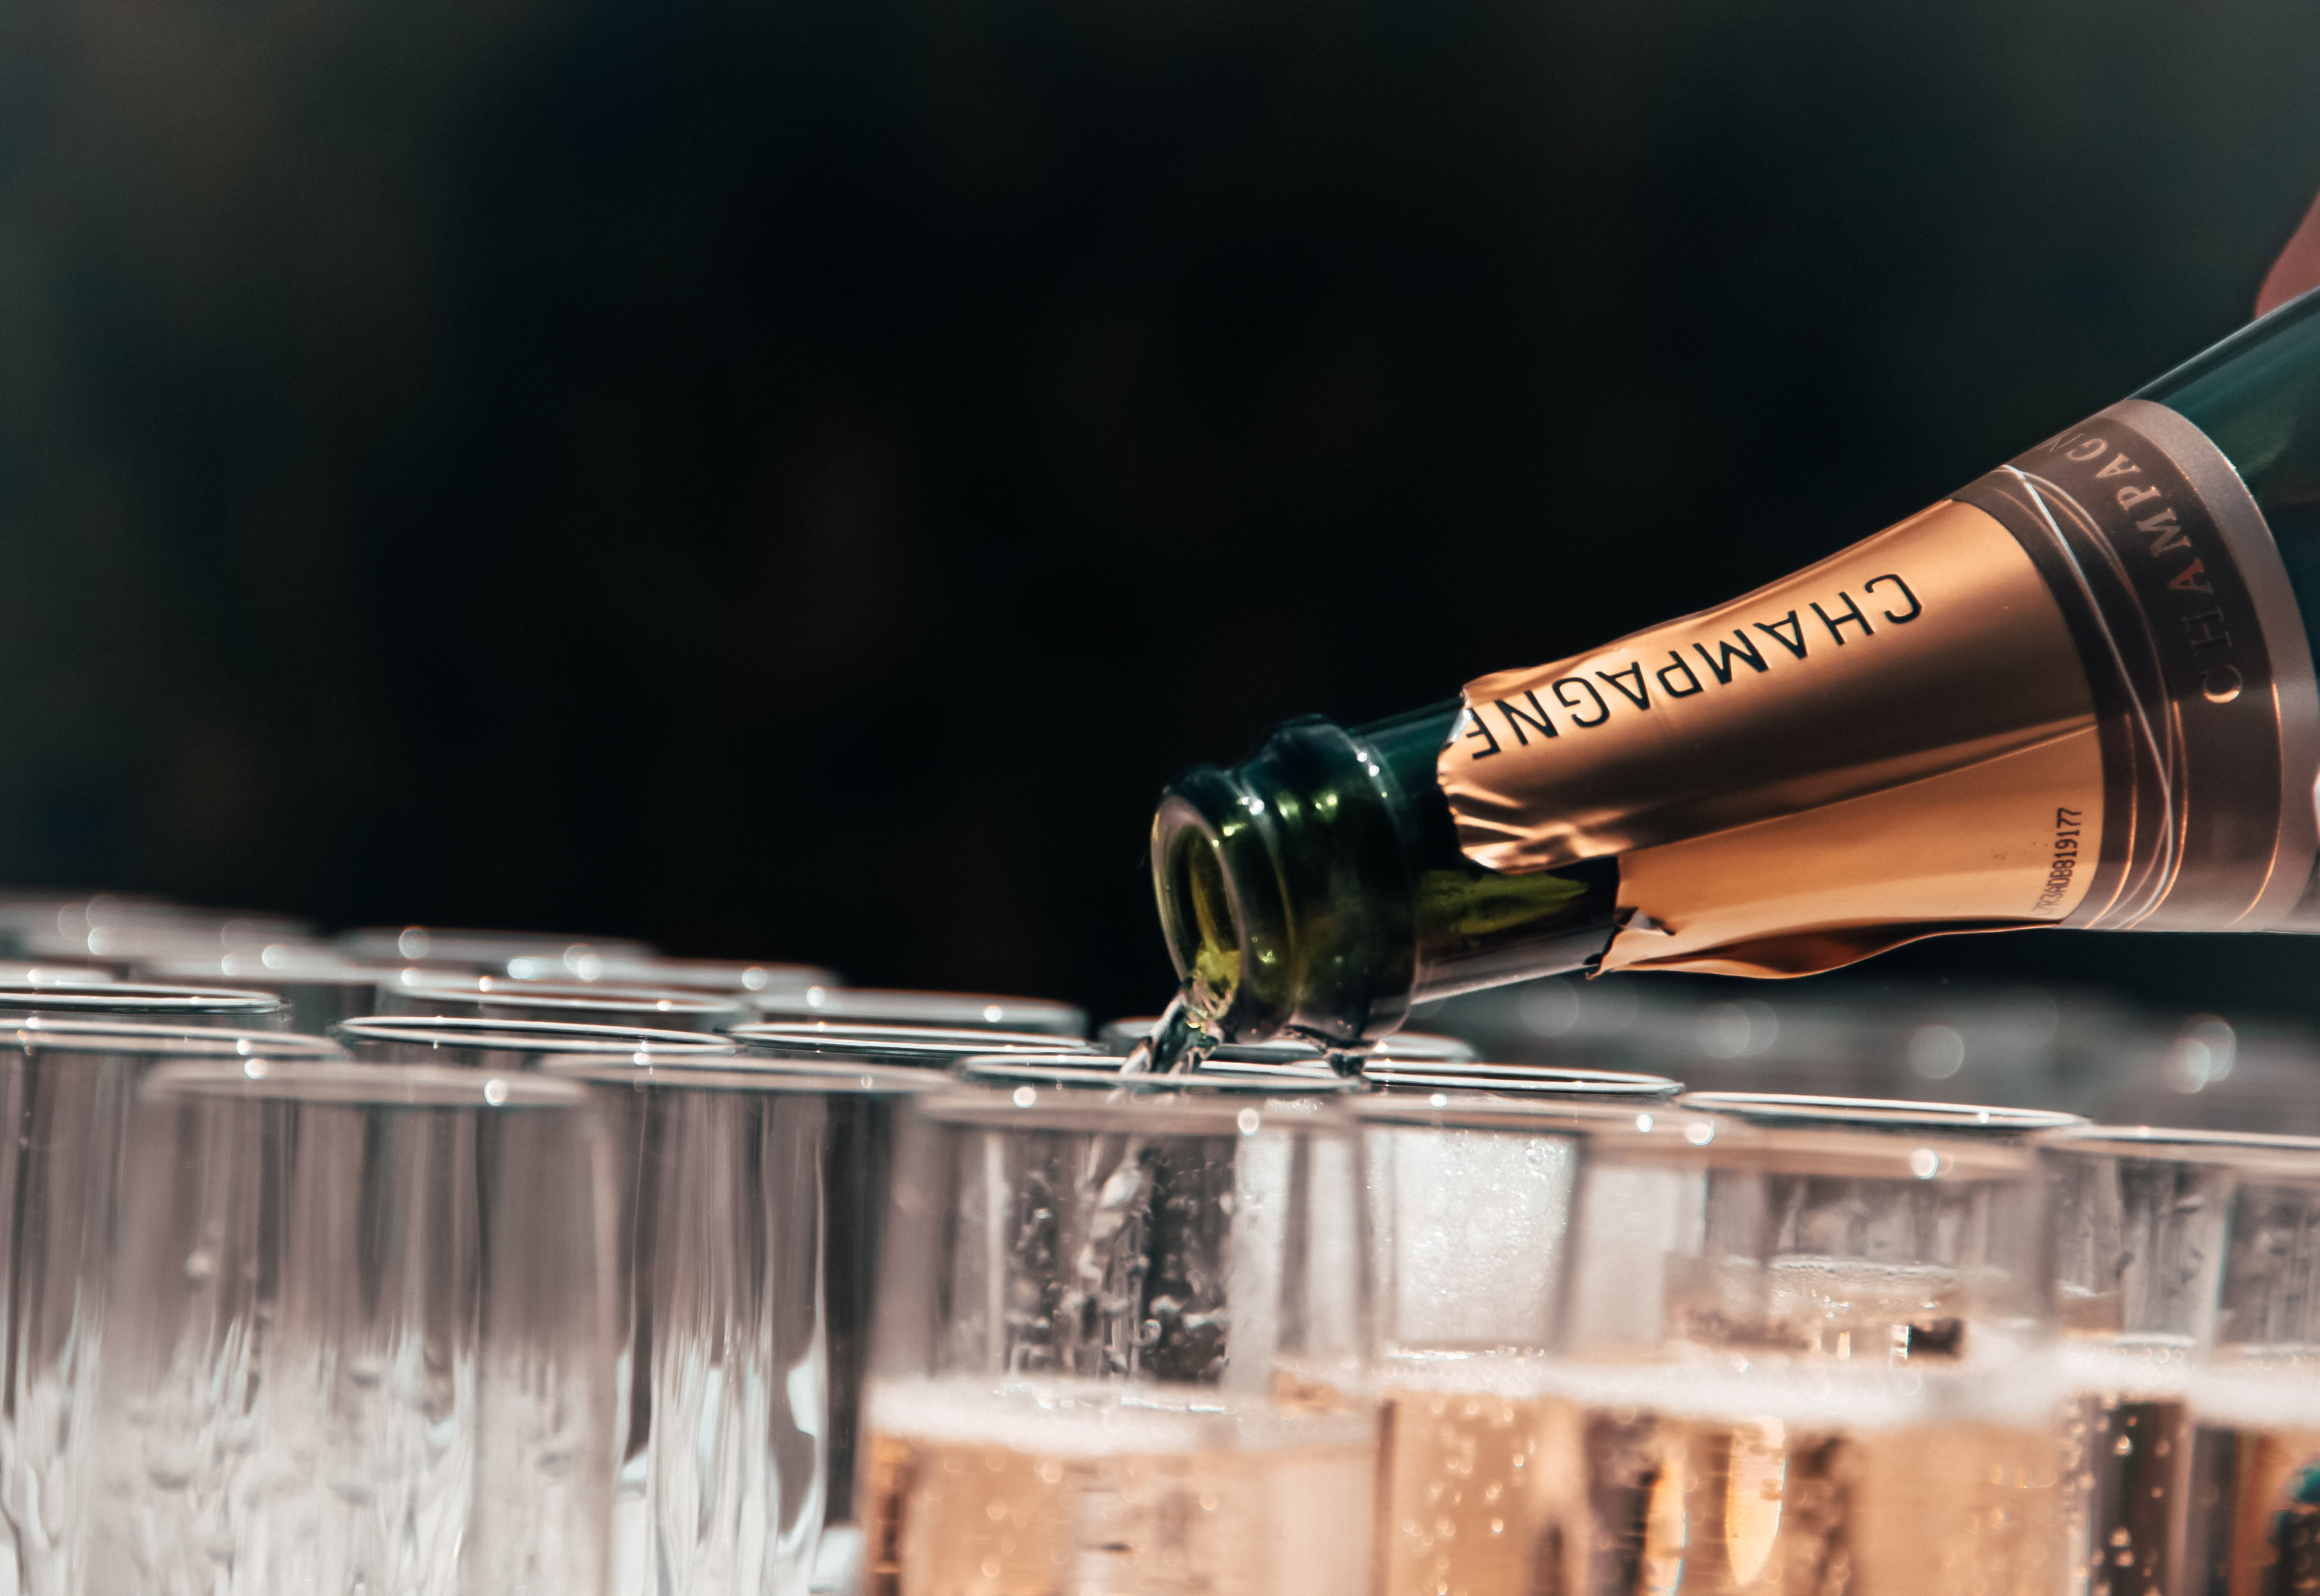 Opening Champagne – The Frenchman's Toot Method